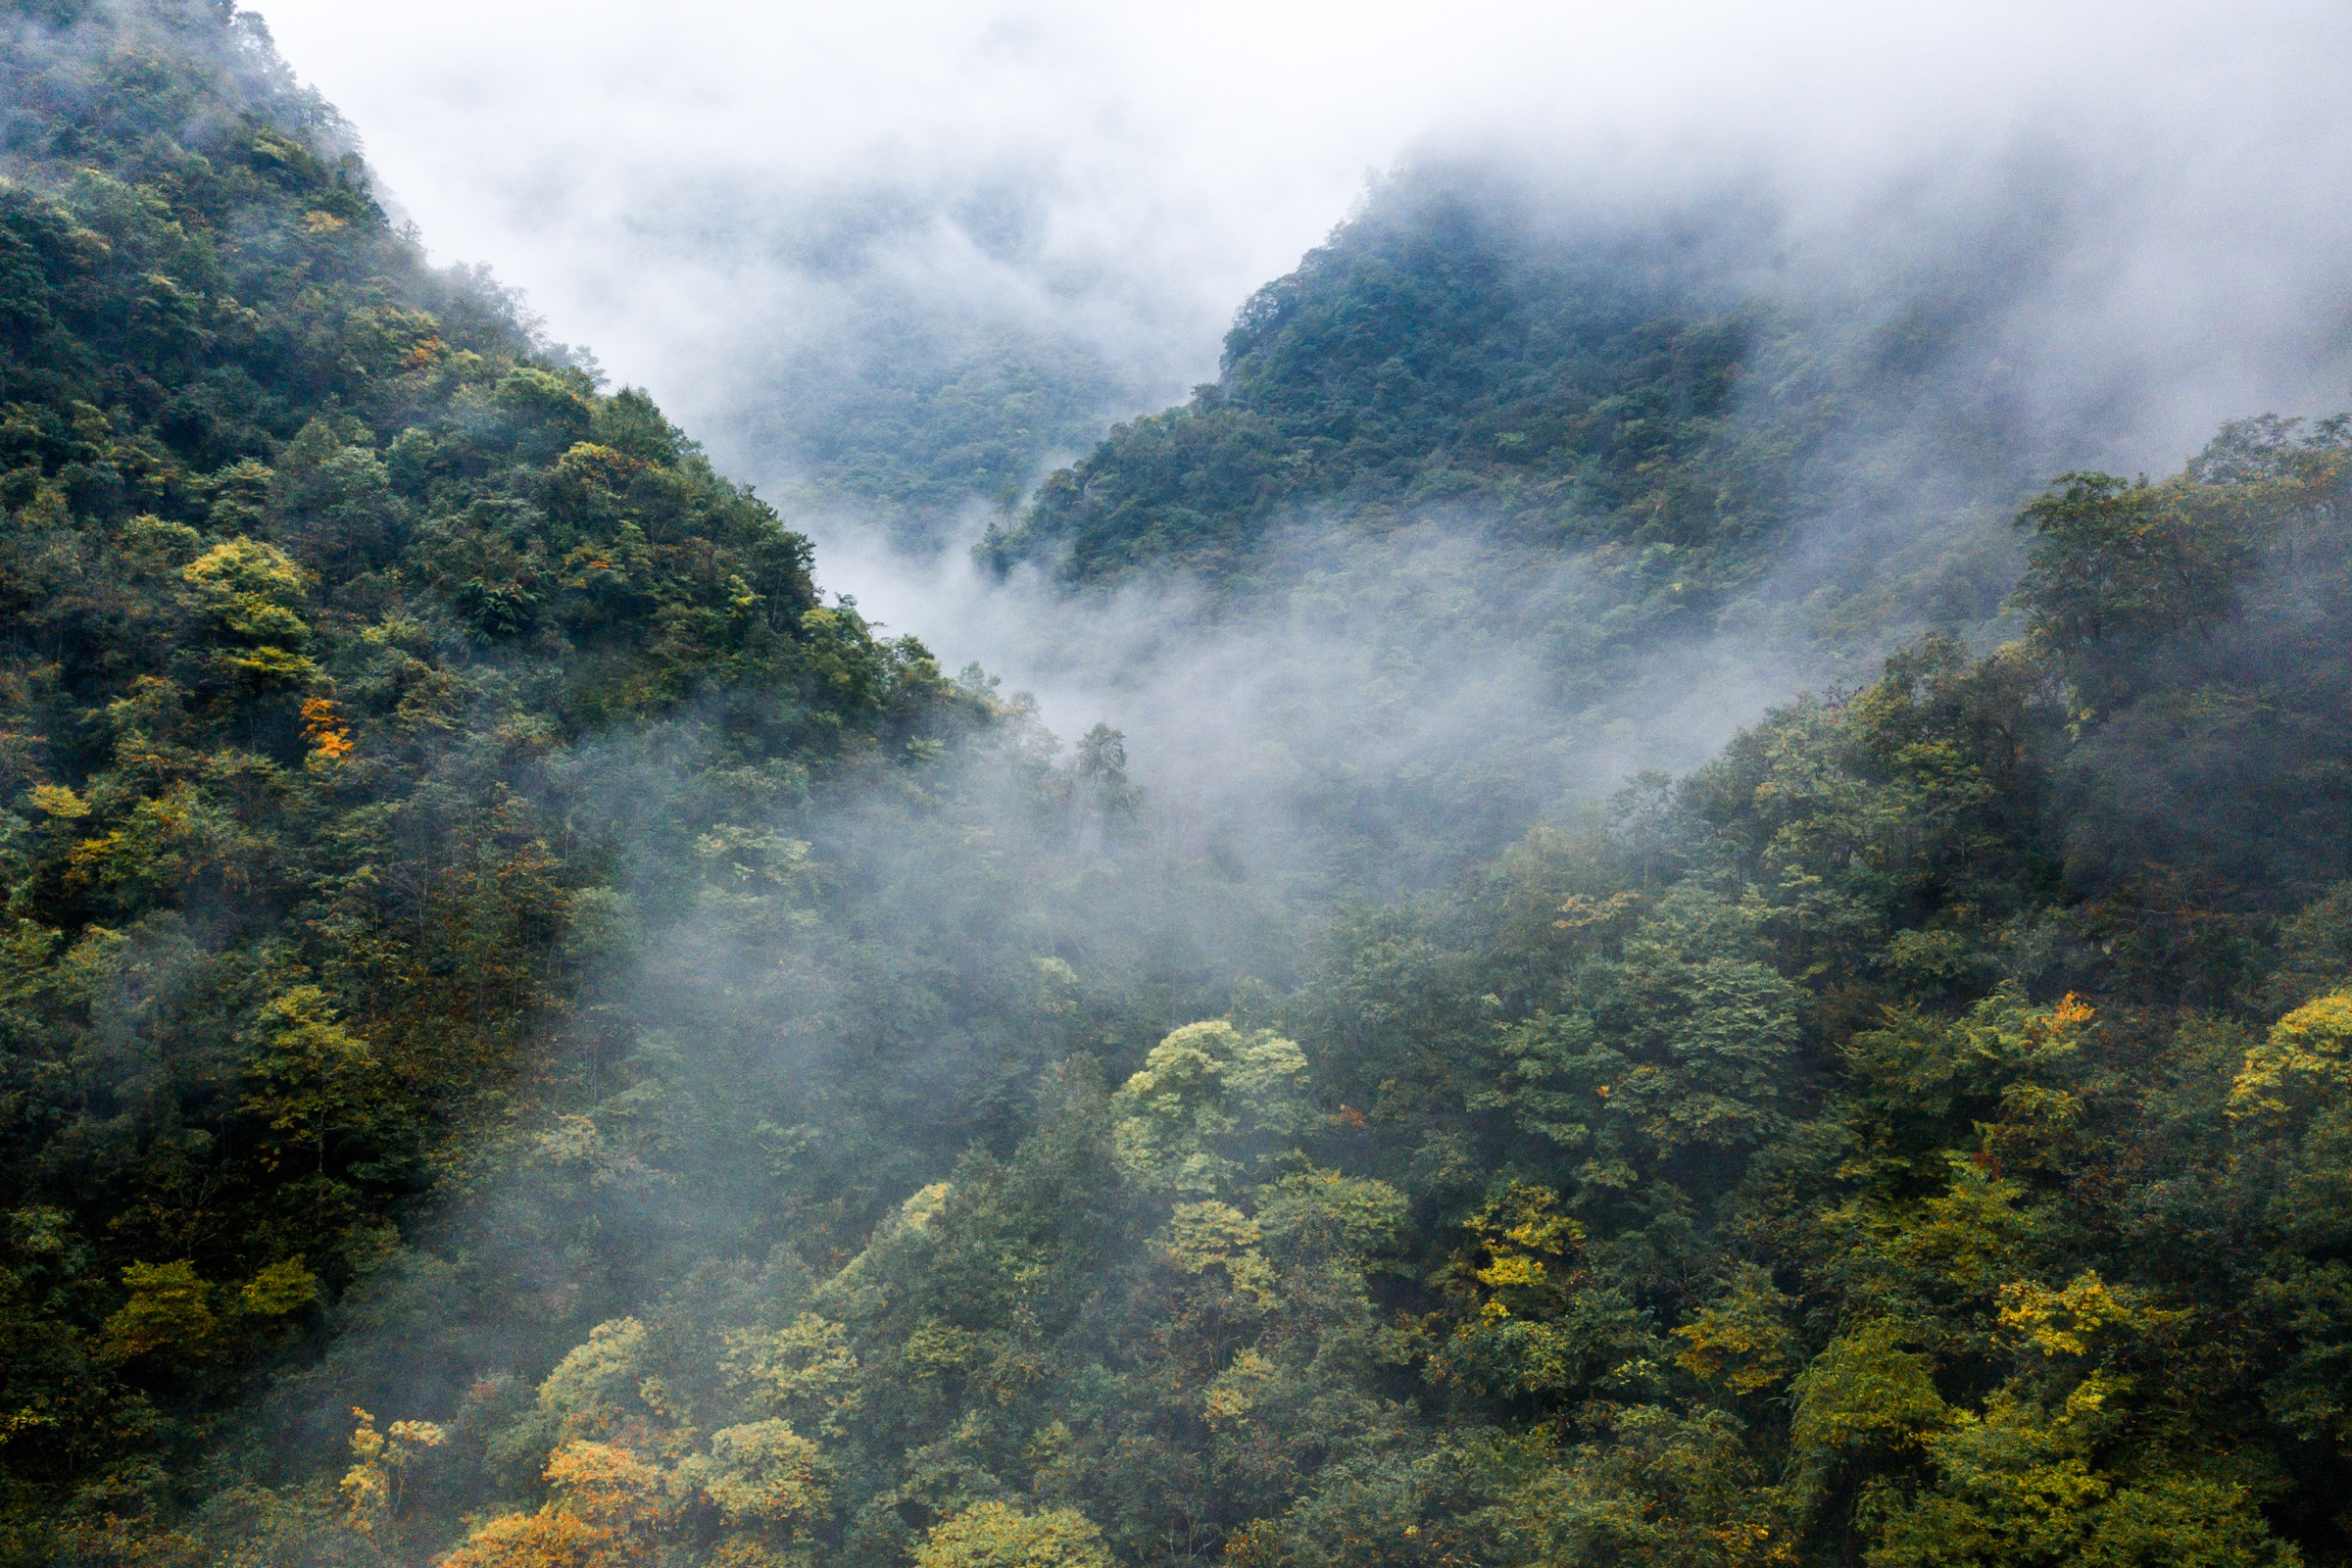 The misty Min Mountains of Guanba Valley in Sichuan provide some of the last remaining habitat for the giant panda. Photograph by Kyle Obermann